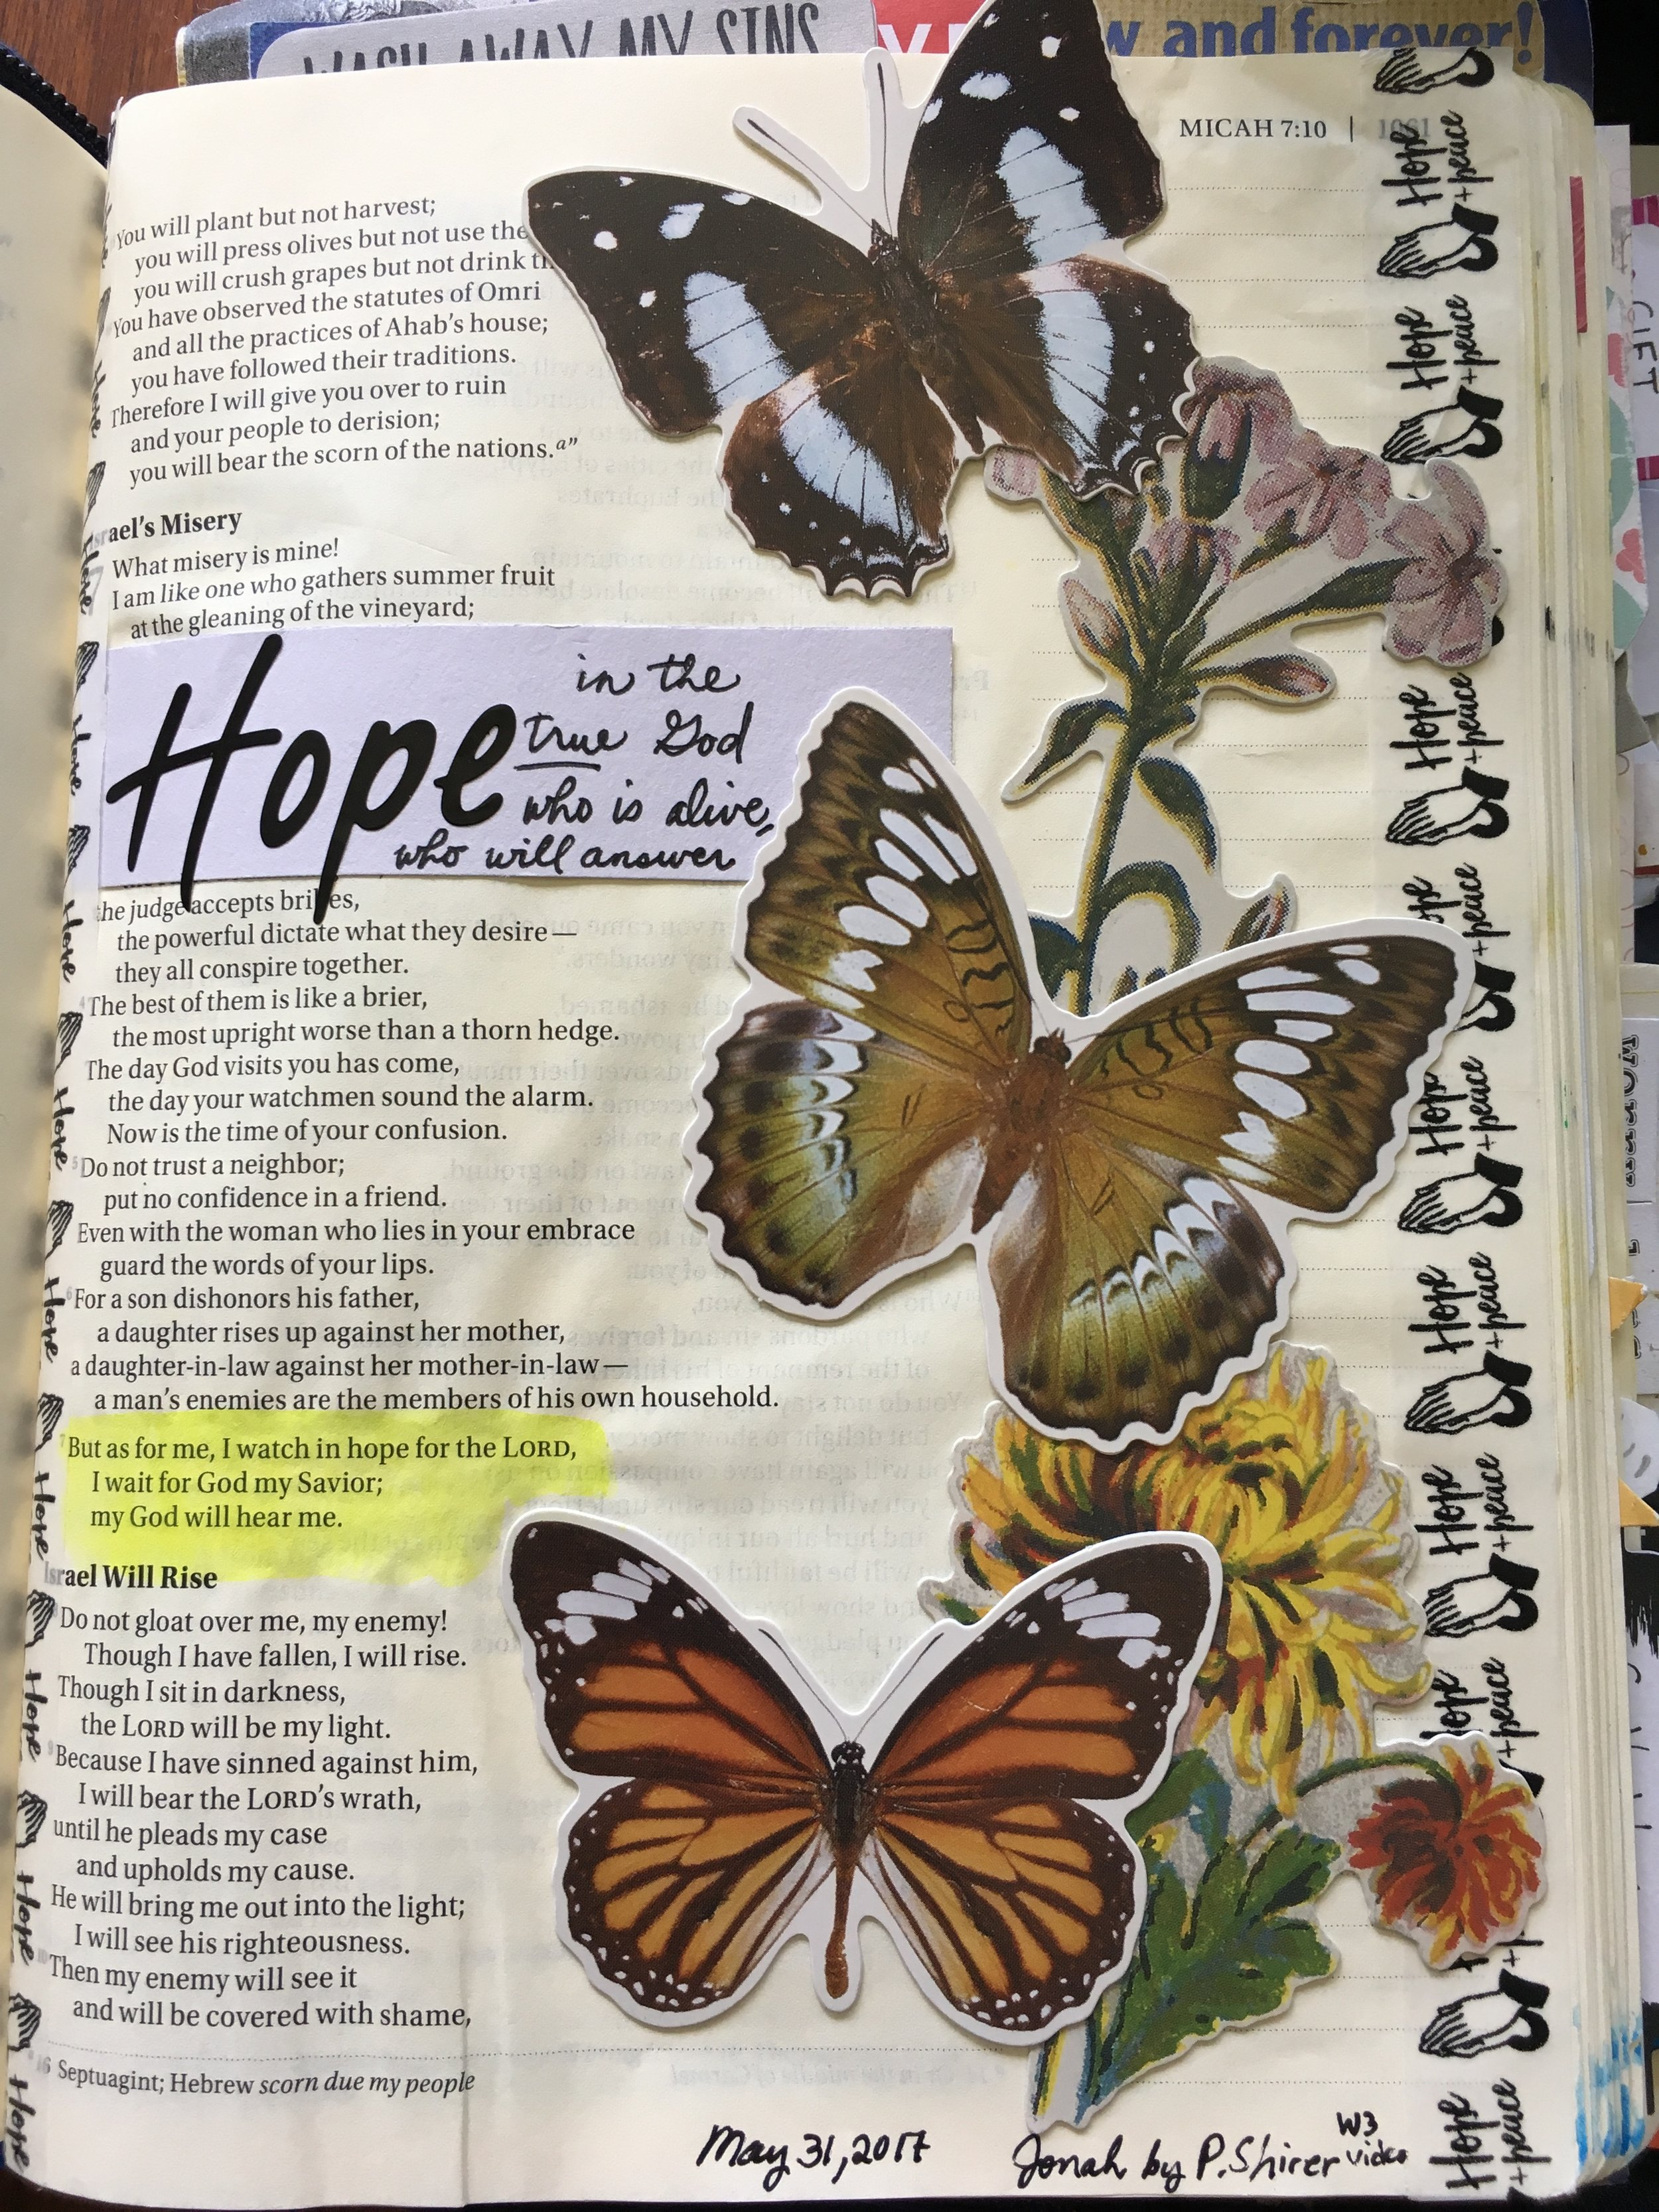 """Sierra Burden Micah 7:7  says, """"But as for me, I watch in hope for the Lord, I wait for God my Savior; my God will hear me."""" When I saw that this verse was about hope, I immediately thought of butterflies. I once trained for a 5K, and near the end of my practice runs, I would see little butterflies on the hillside. The butterflies were my hope that I could finish strong. I like translating that to my life in Bible Journaling. Waiting in hope for the Lord."""